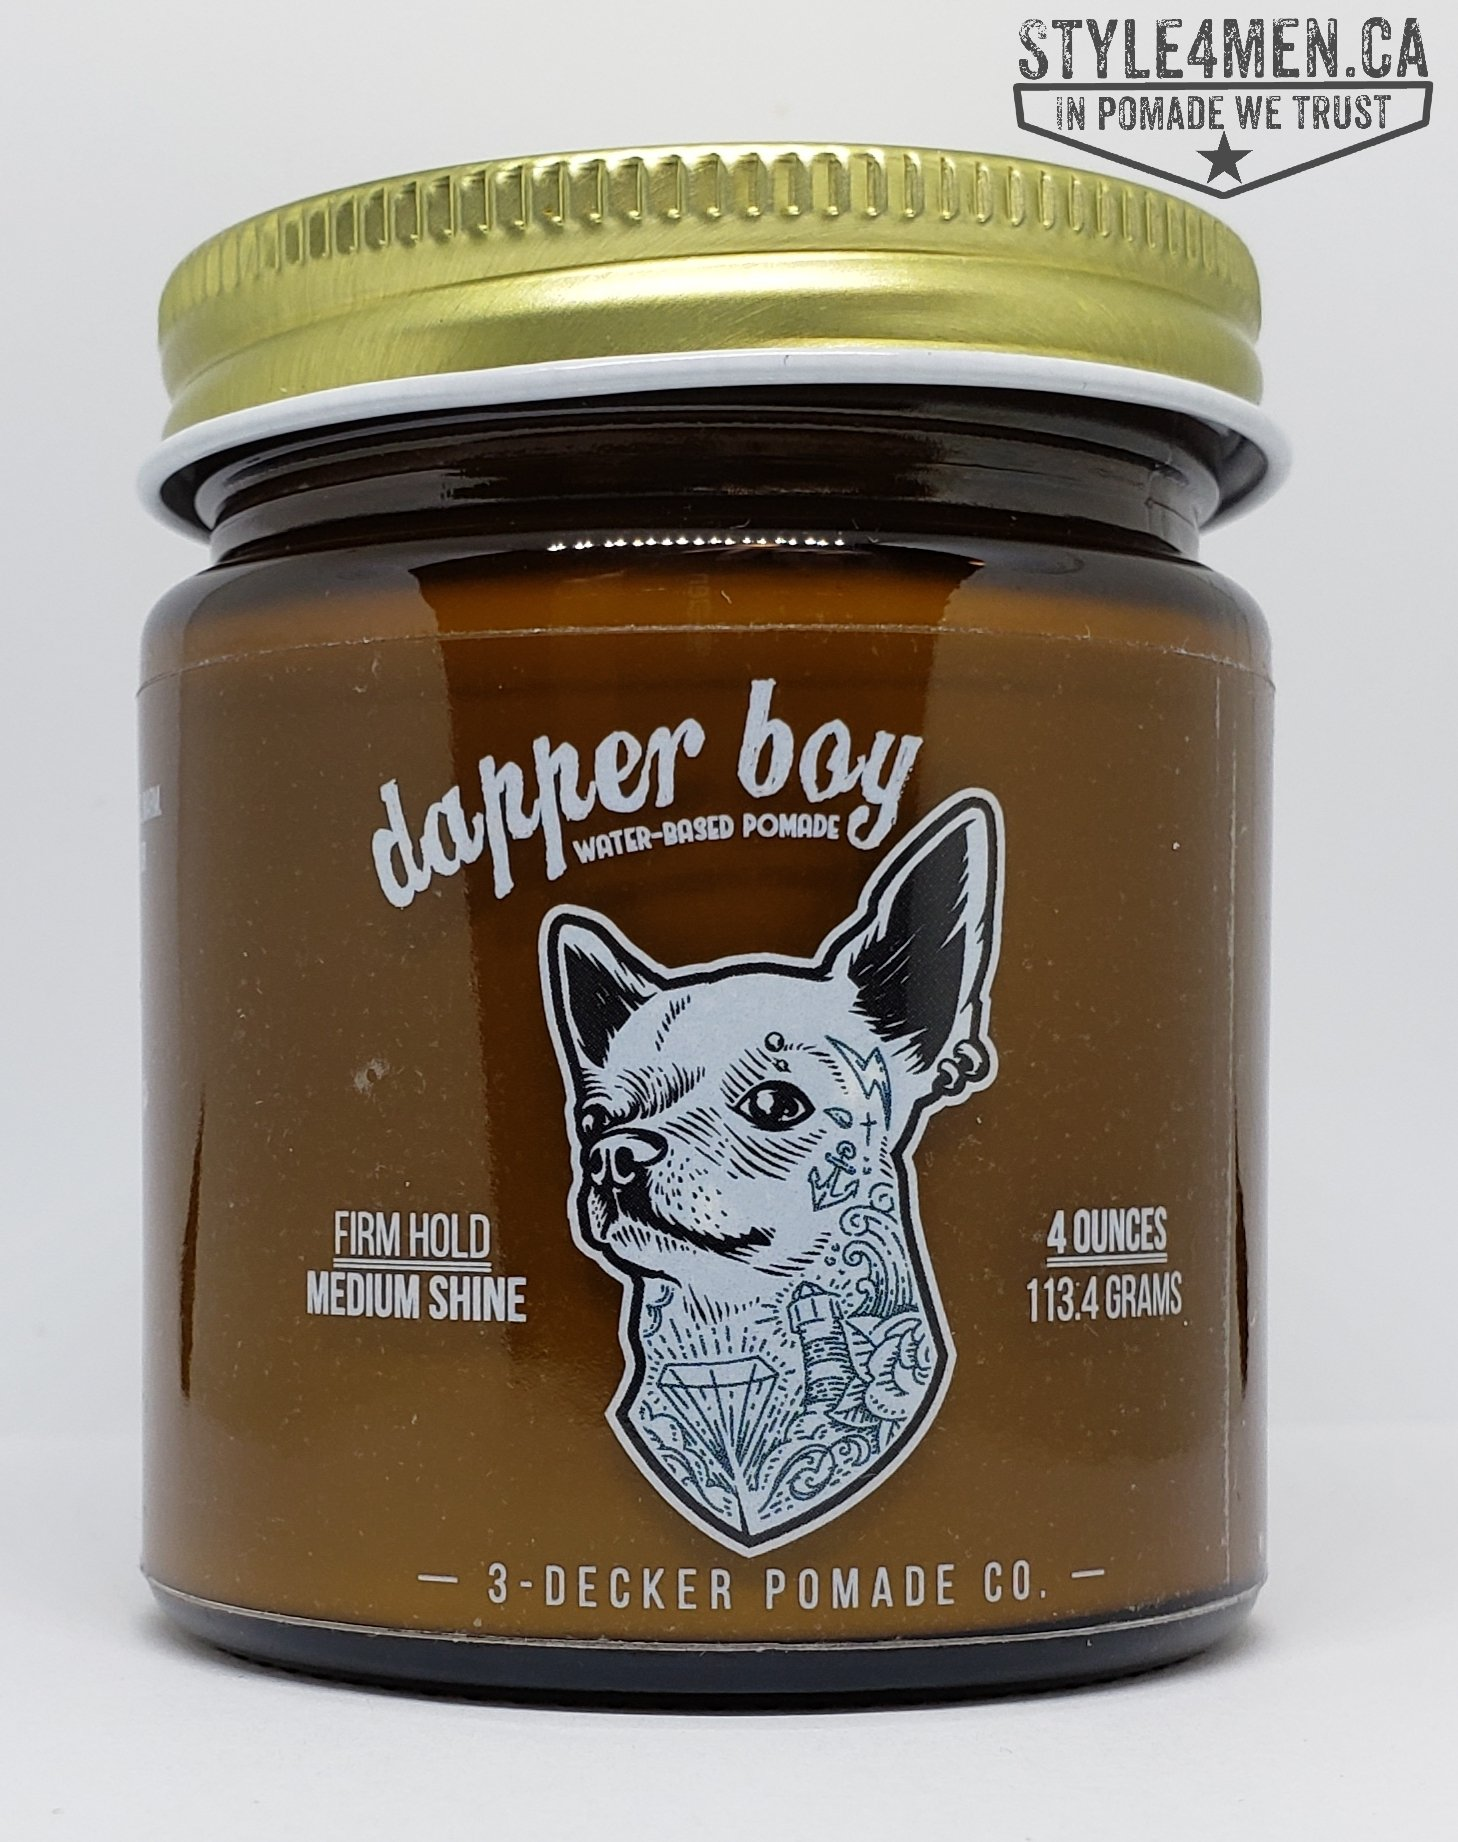 Dapper Boy 3 Decker Pomade Co.